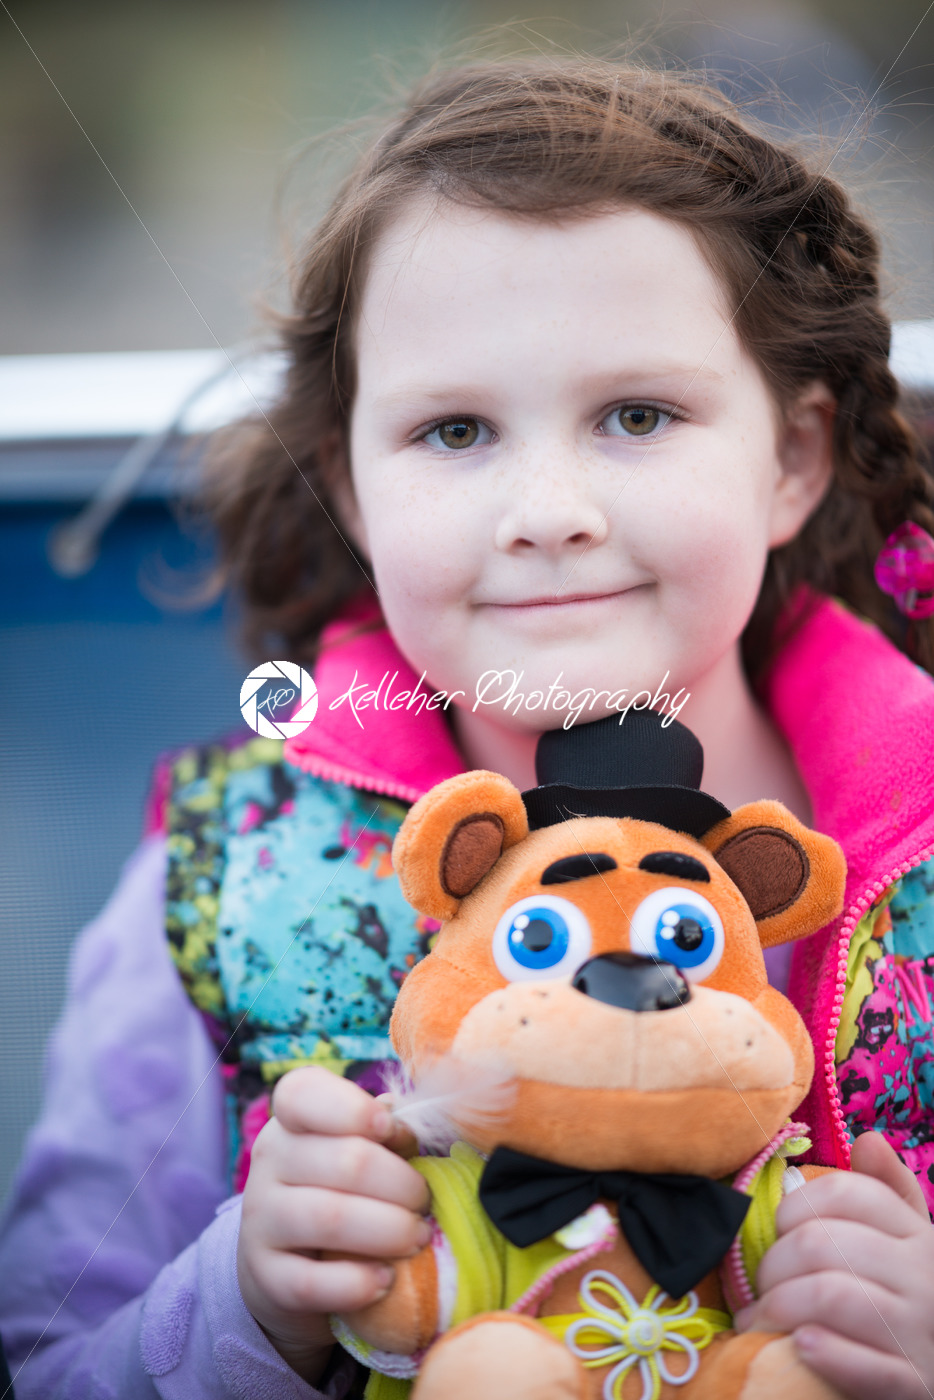 Young girl outside on boat looking happy - Kelleher Photography Store